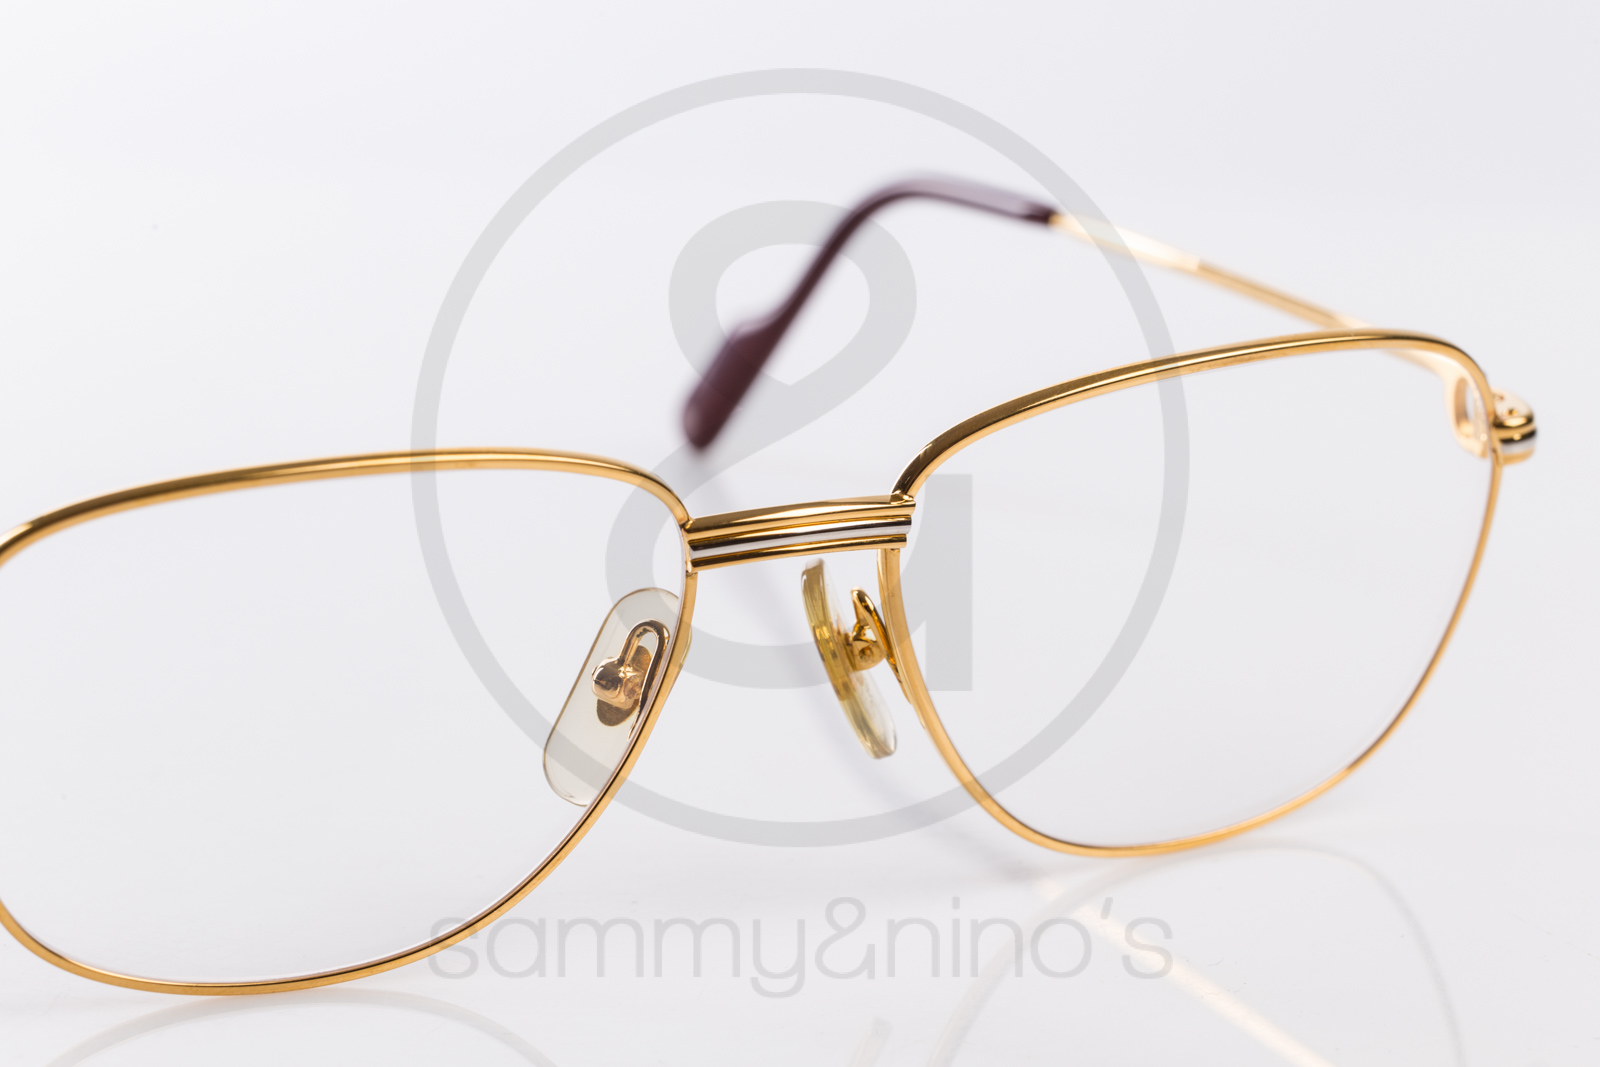 cartier courcelles 57 17 sammy nino s store